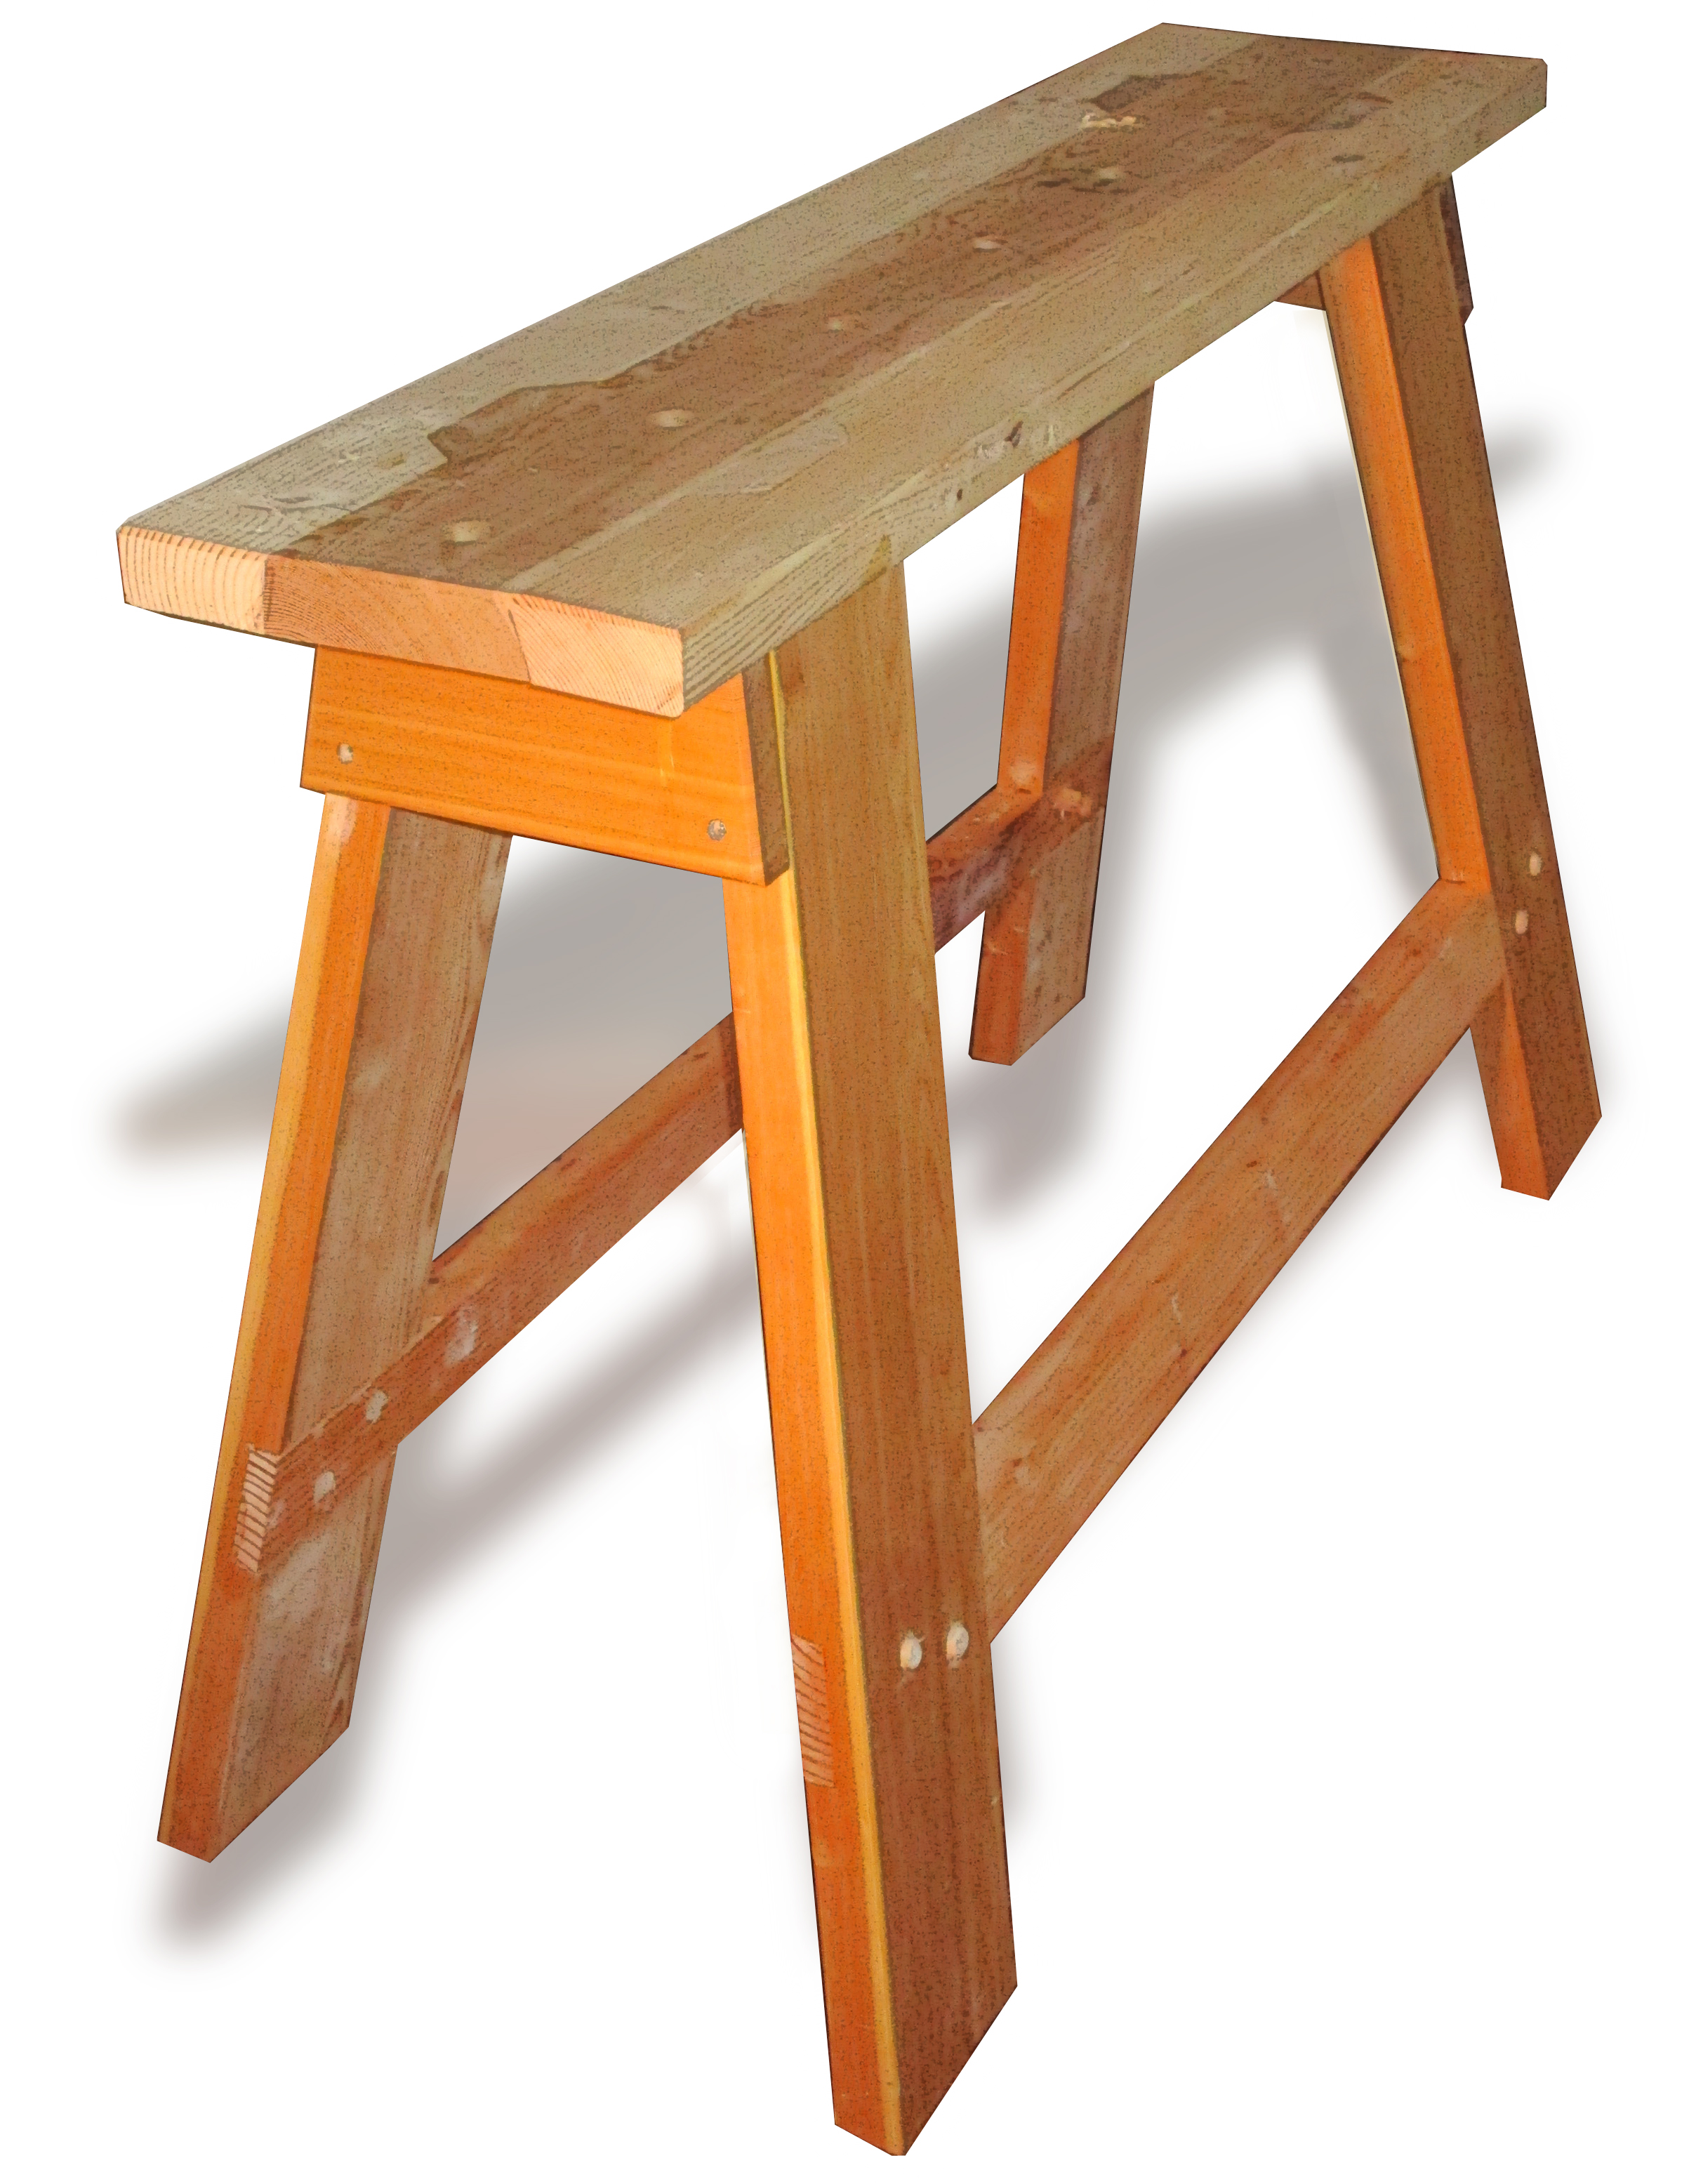 My own dear son asked why I'd spend so much time on sawhorses?